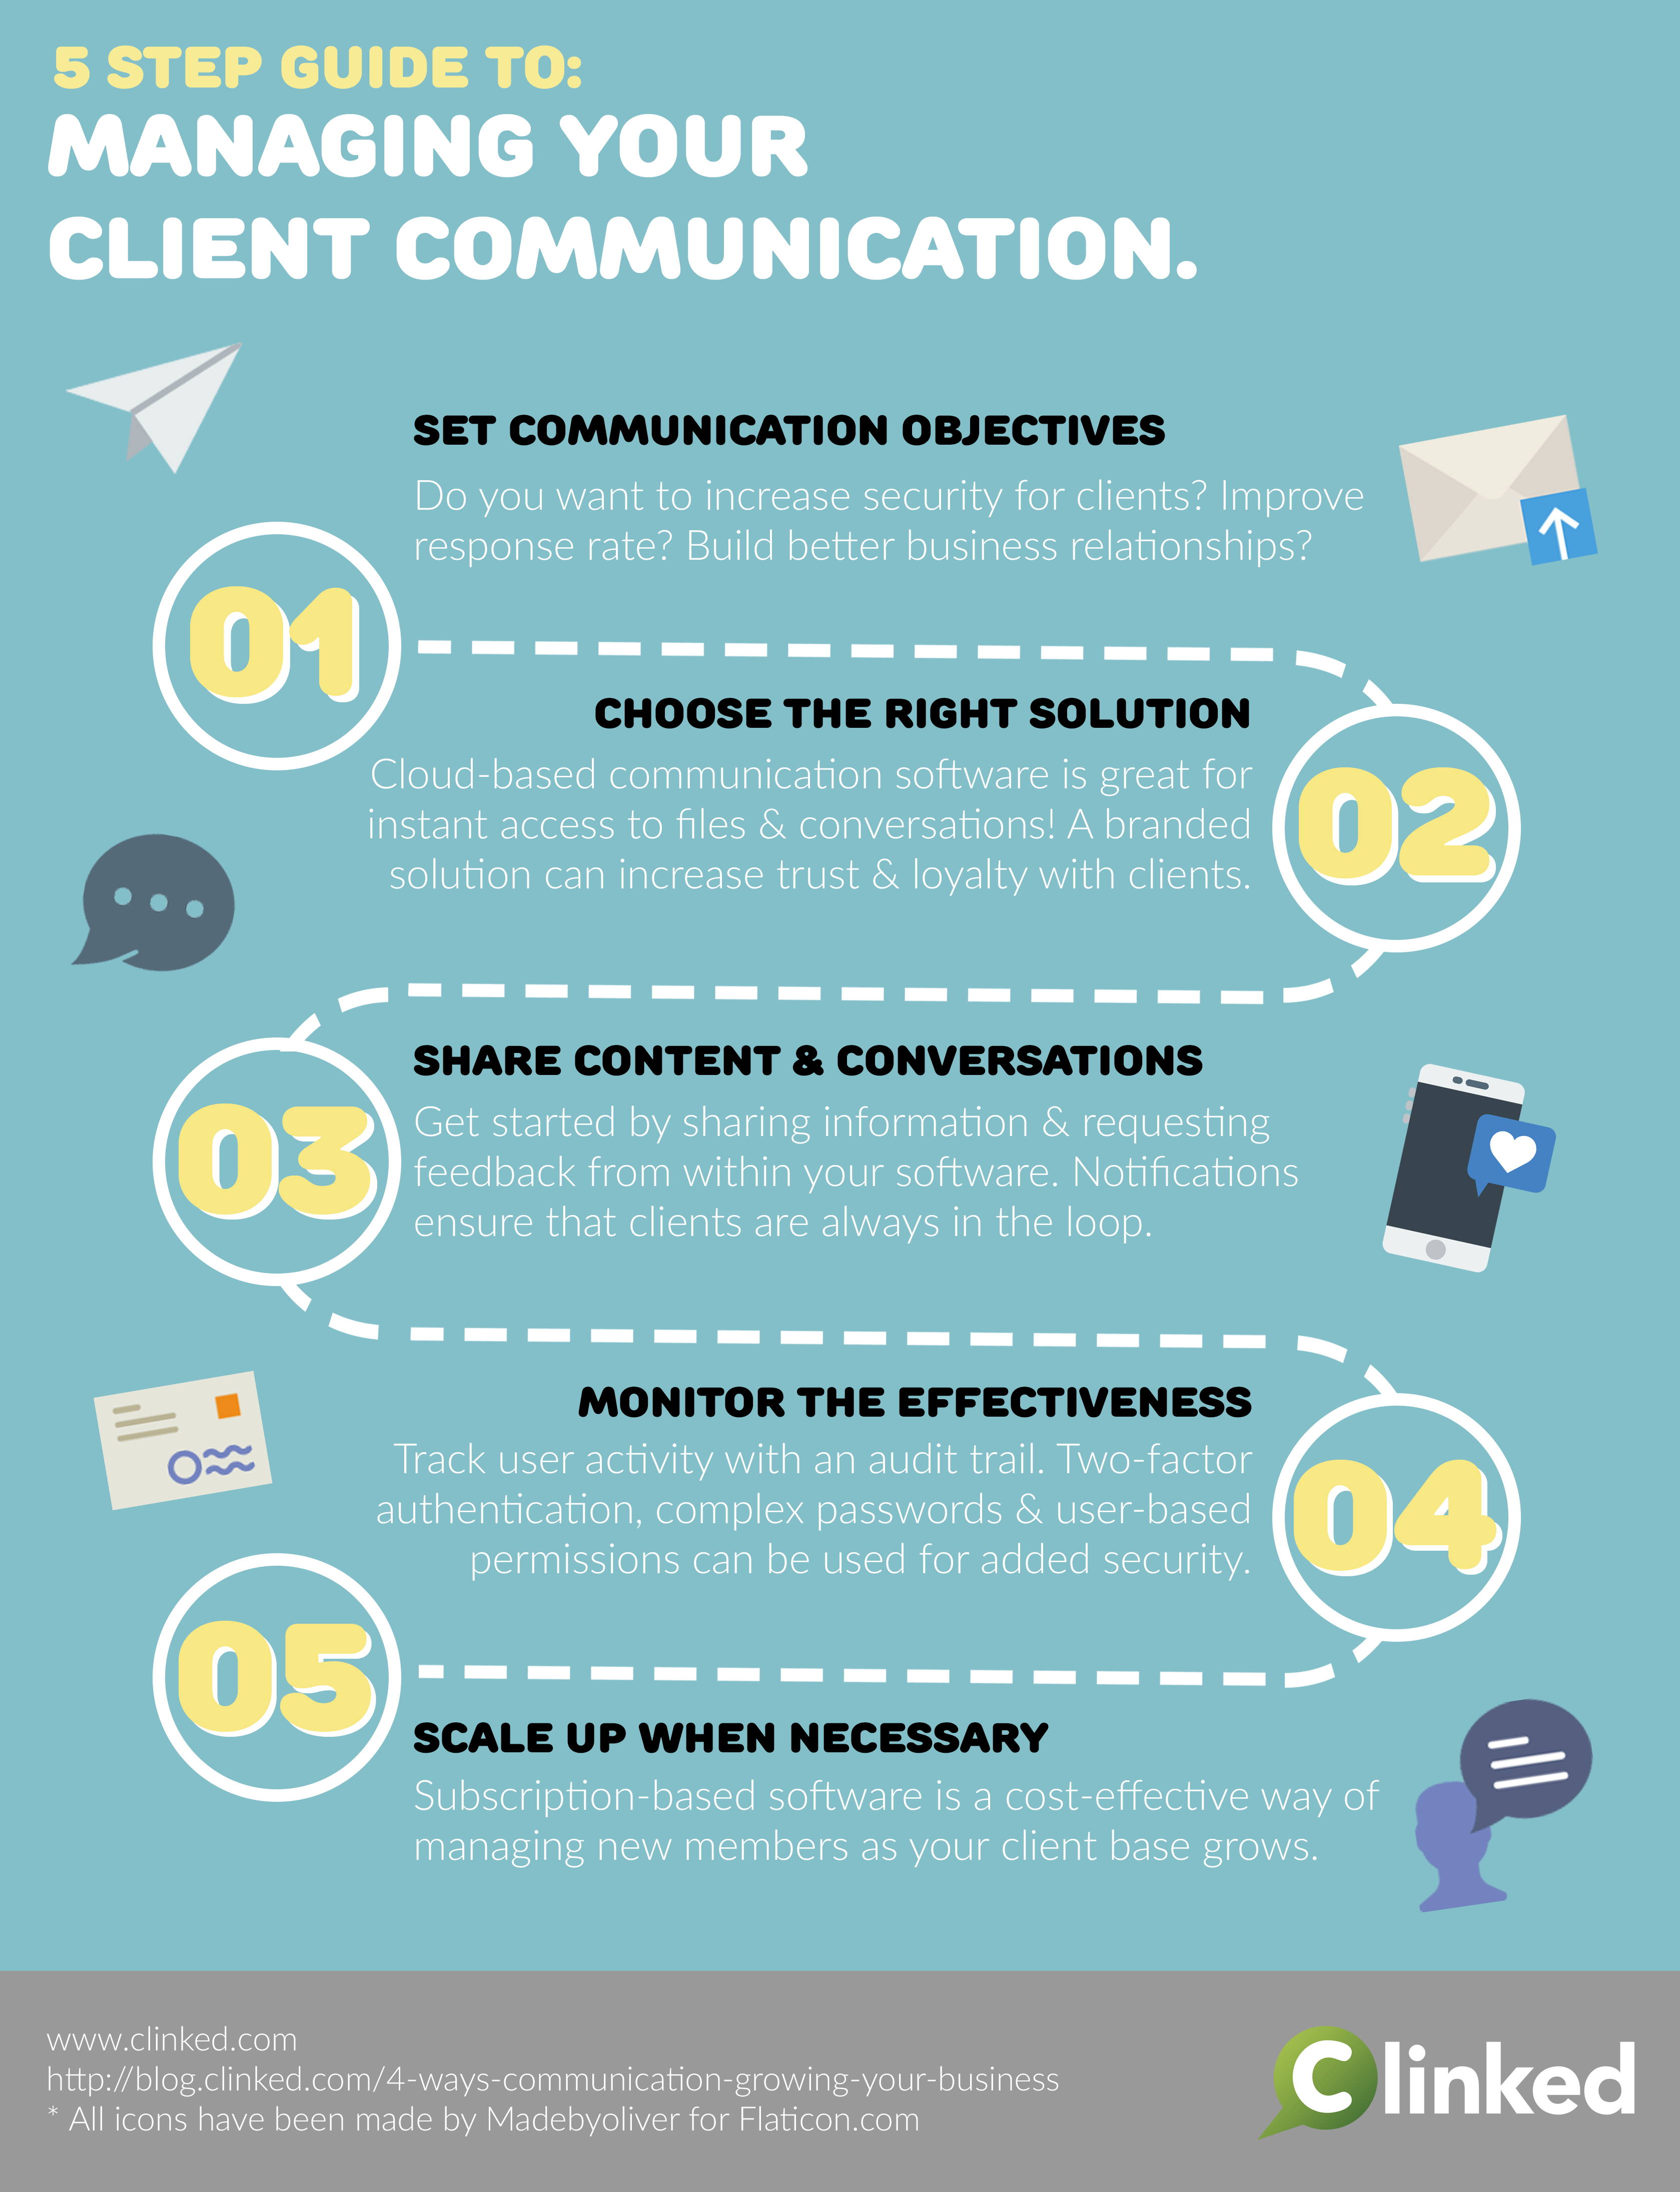 Five-Step Guide: Managing Your Client Communication